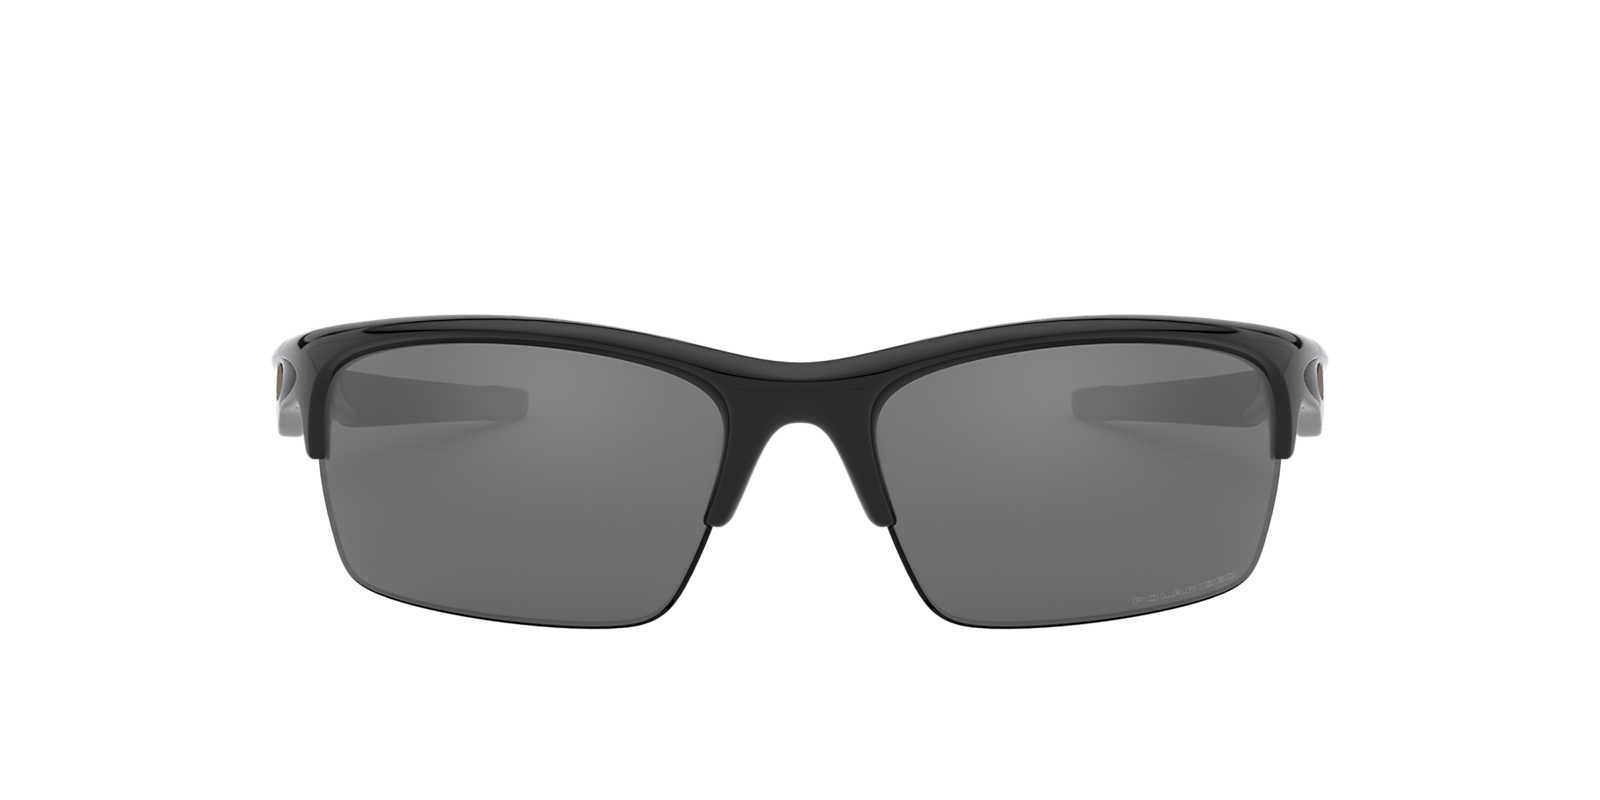 Oakley Sunglass Styles  oo9164 bottle rocket oo9164 bottle rocket · oakley